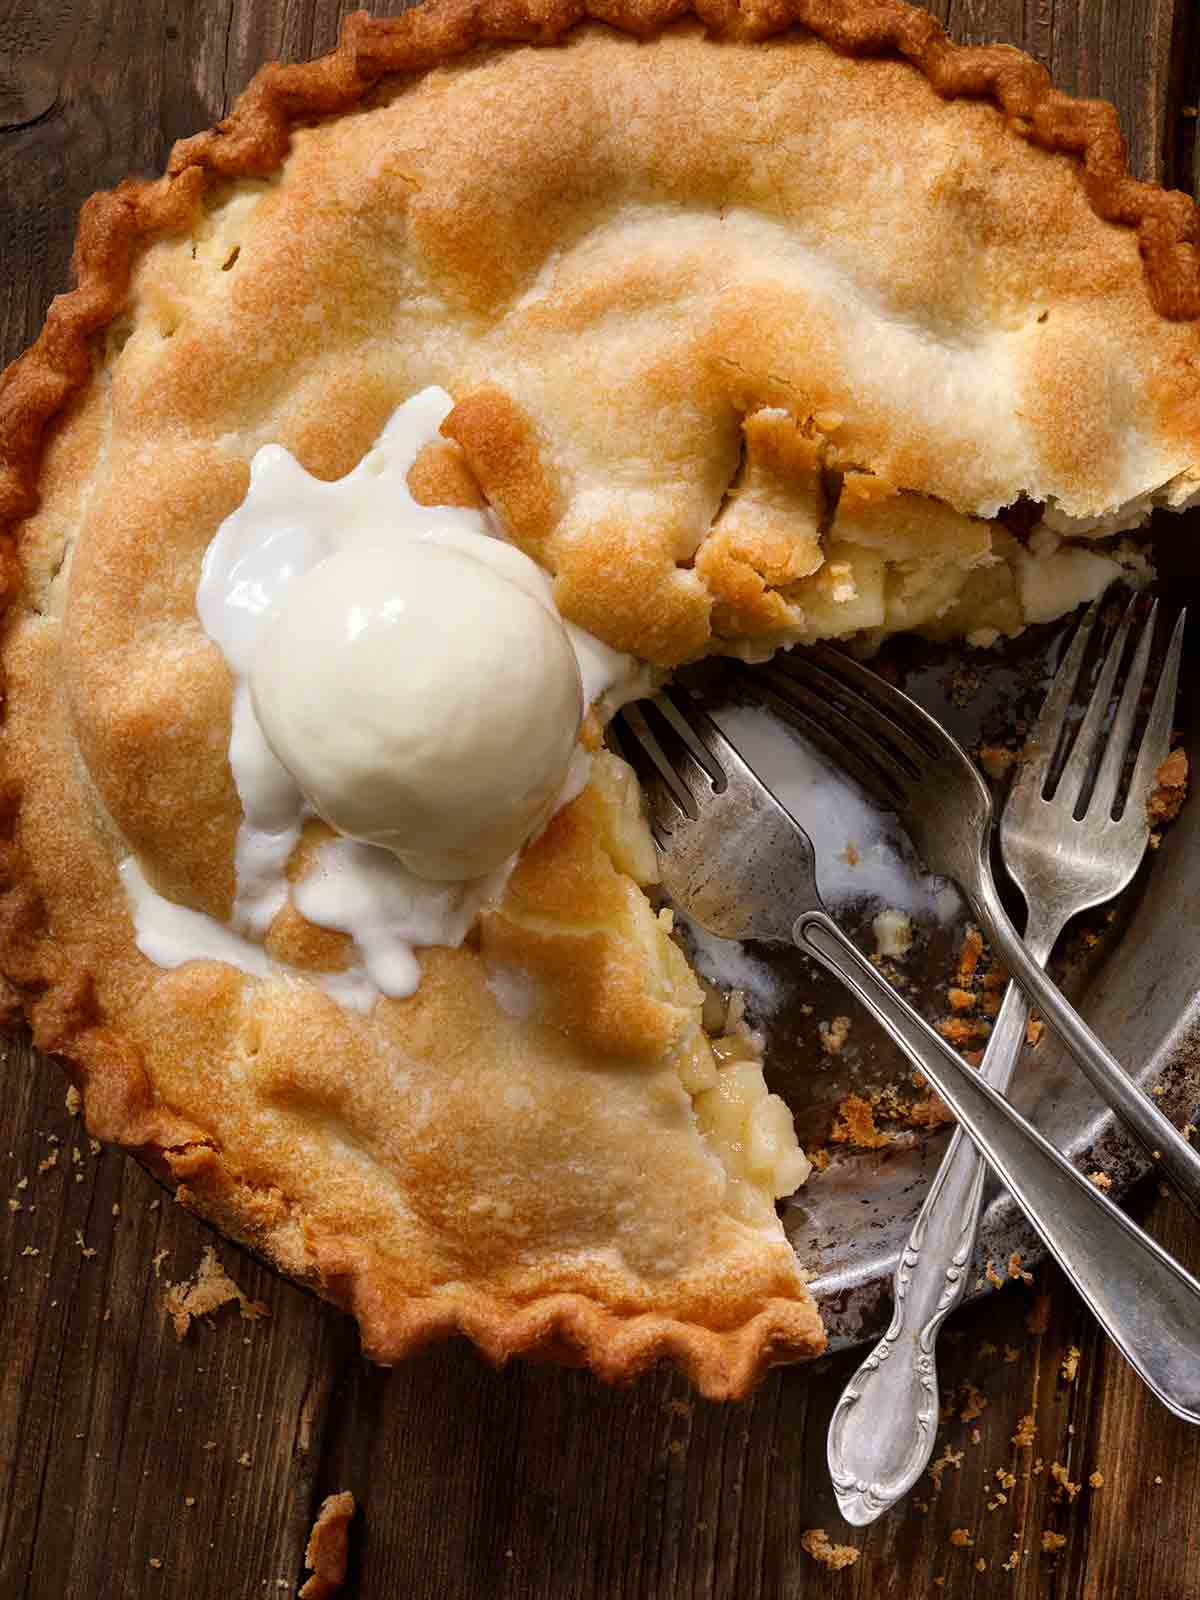 A classic apple pie with one-quarter missing, topped with a scoop of ice cream, and three forks in the empty pie spot.